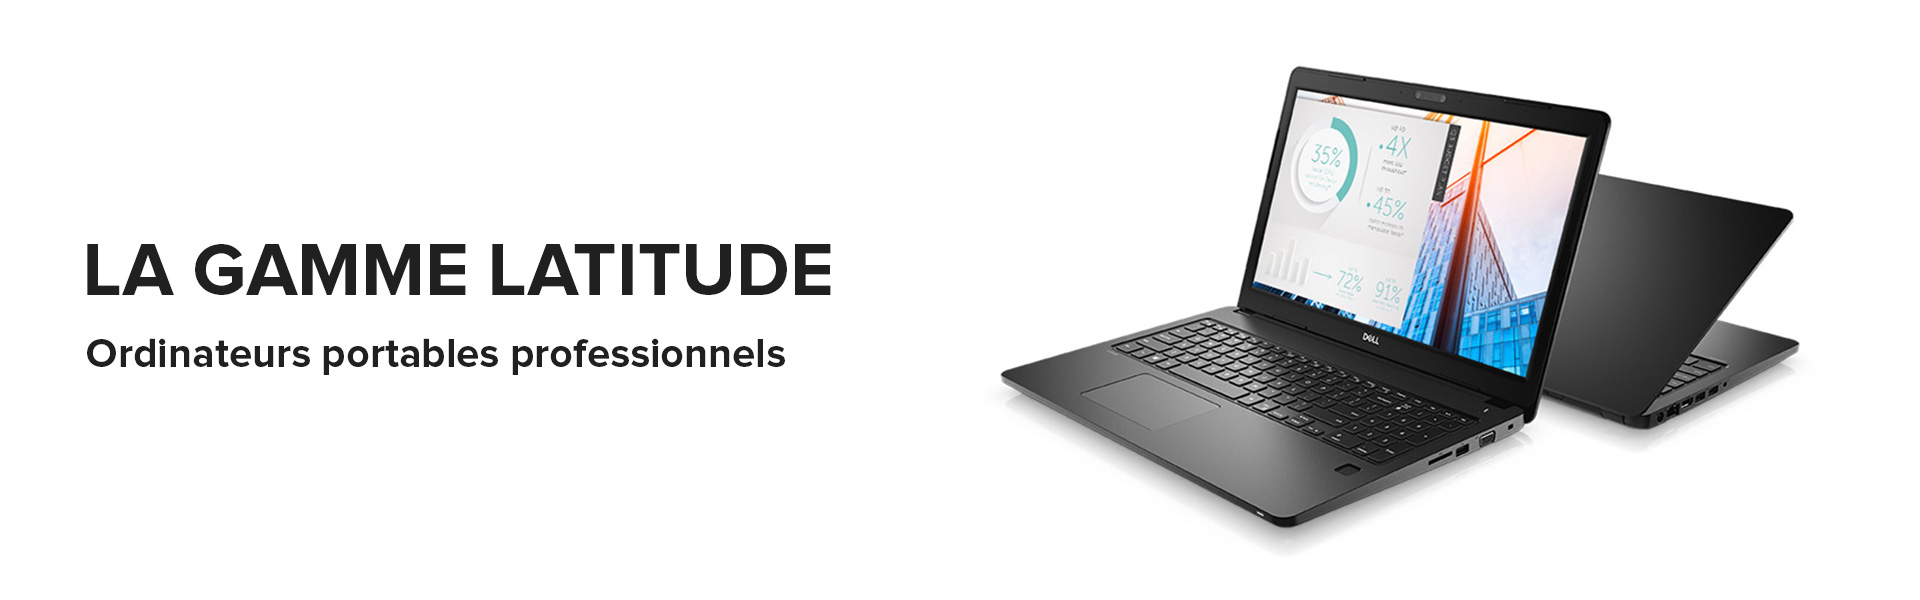 Dell-latitude-gamme-trade-discount-guide-